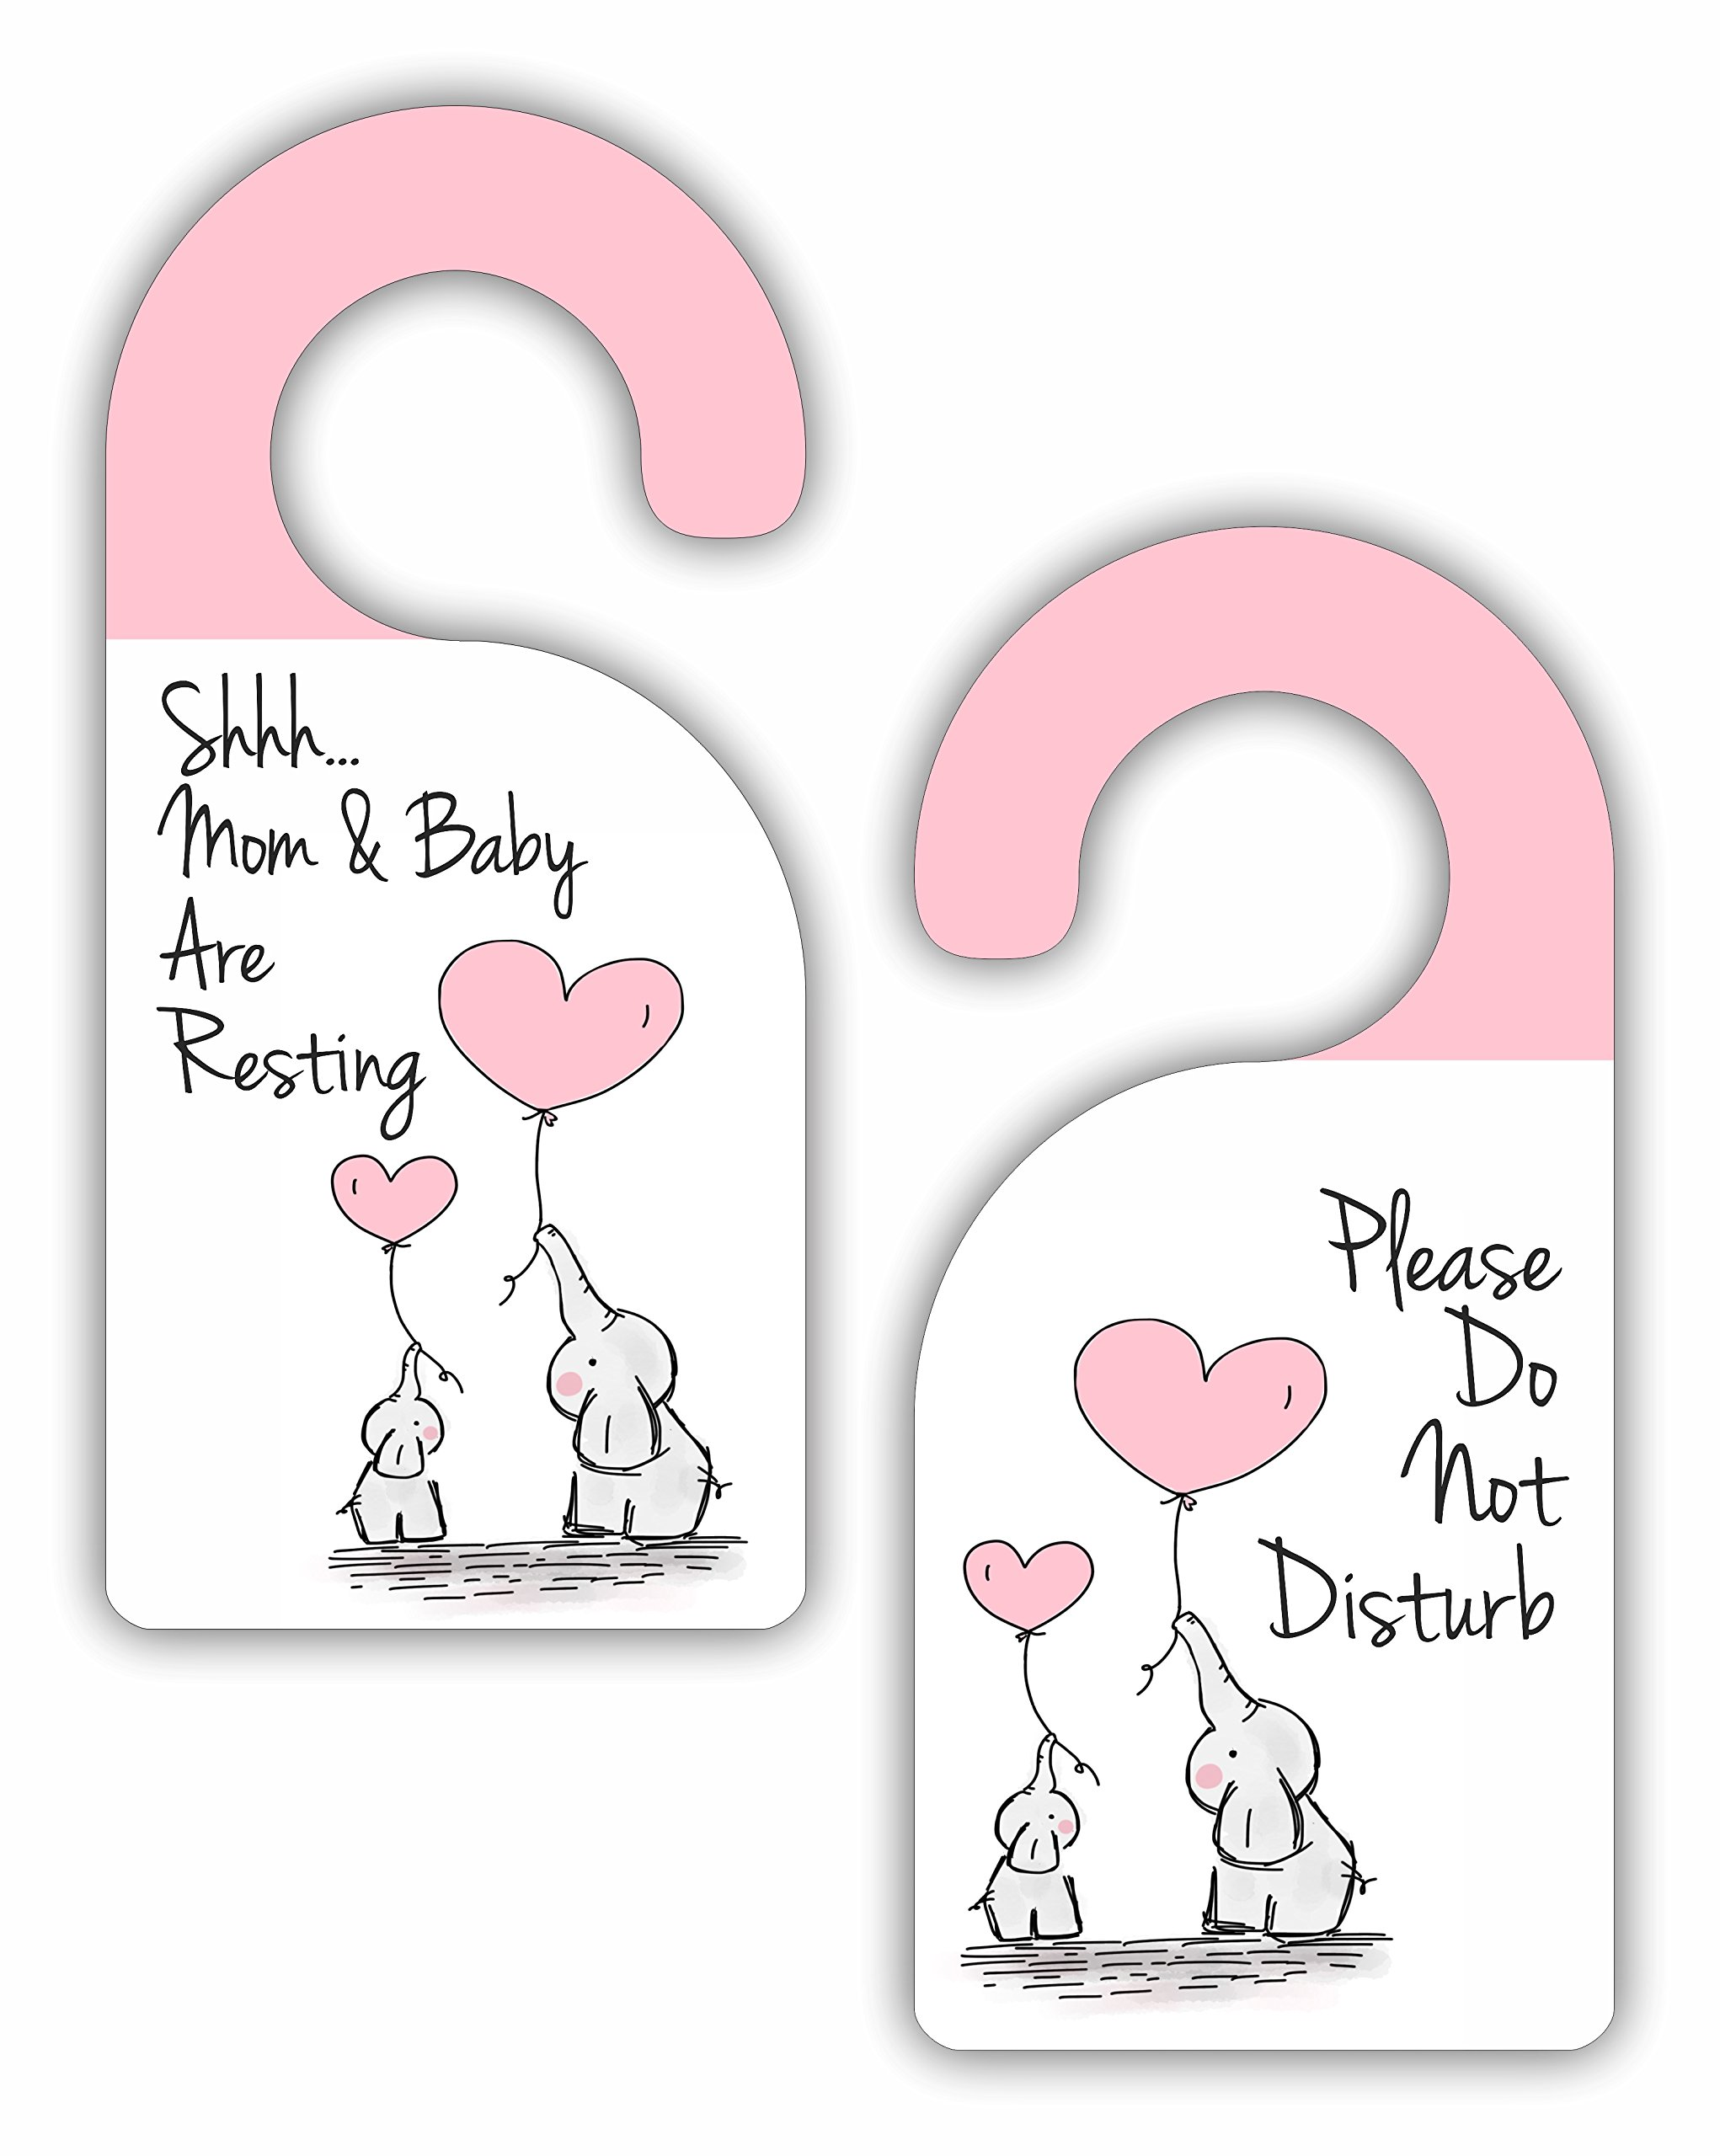 Shhh Mom and Baby Are Resting - Please Do Not Disturb - Baby Girl - Room Door Sign Hanger - Double Sided - Hard Plastic - Glossy Finish